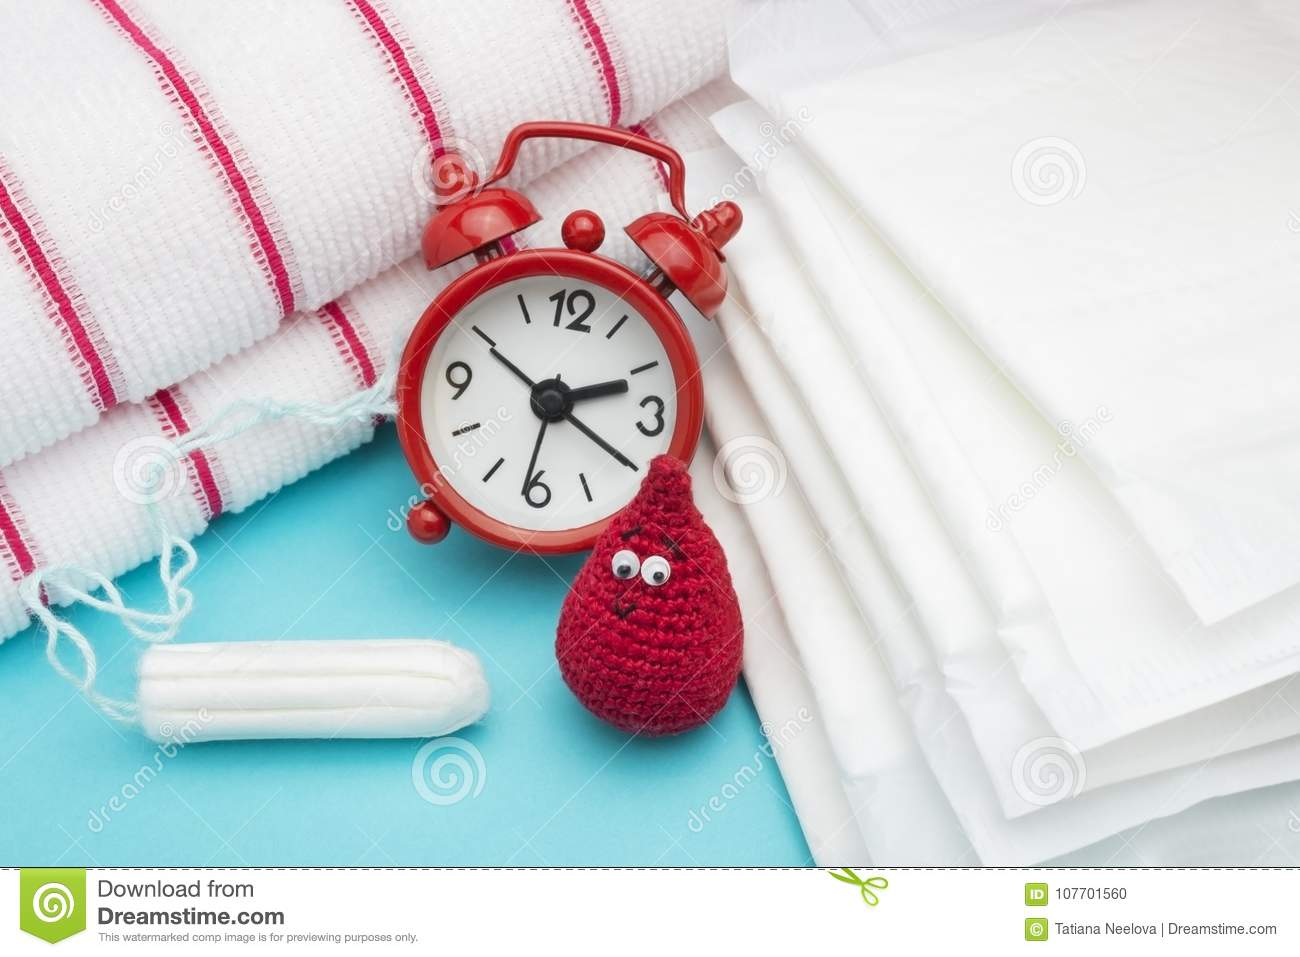 Red alarm clock, dreamy smile crochet blood drop, daily menstrual pad and tampon and terry towel. Menstruation sanitary woman hygi